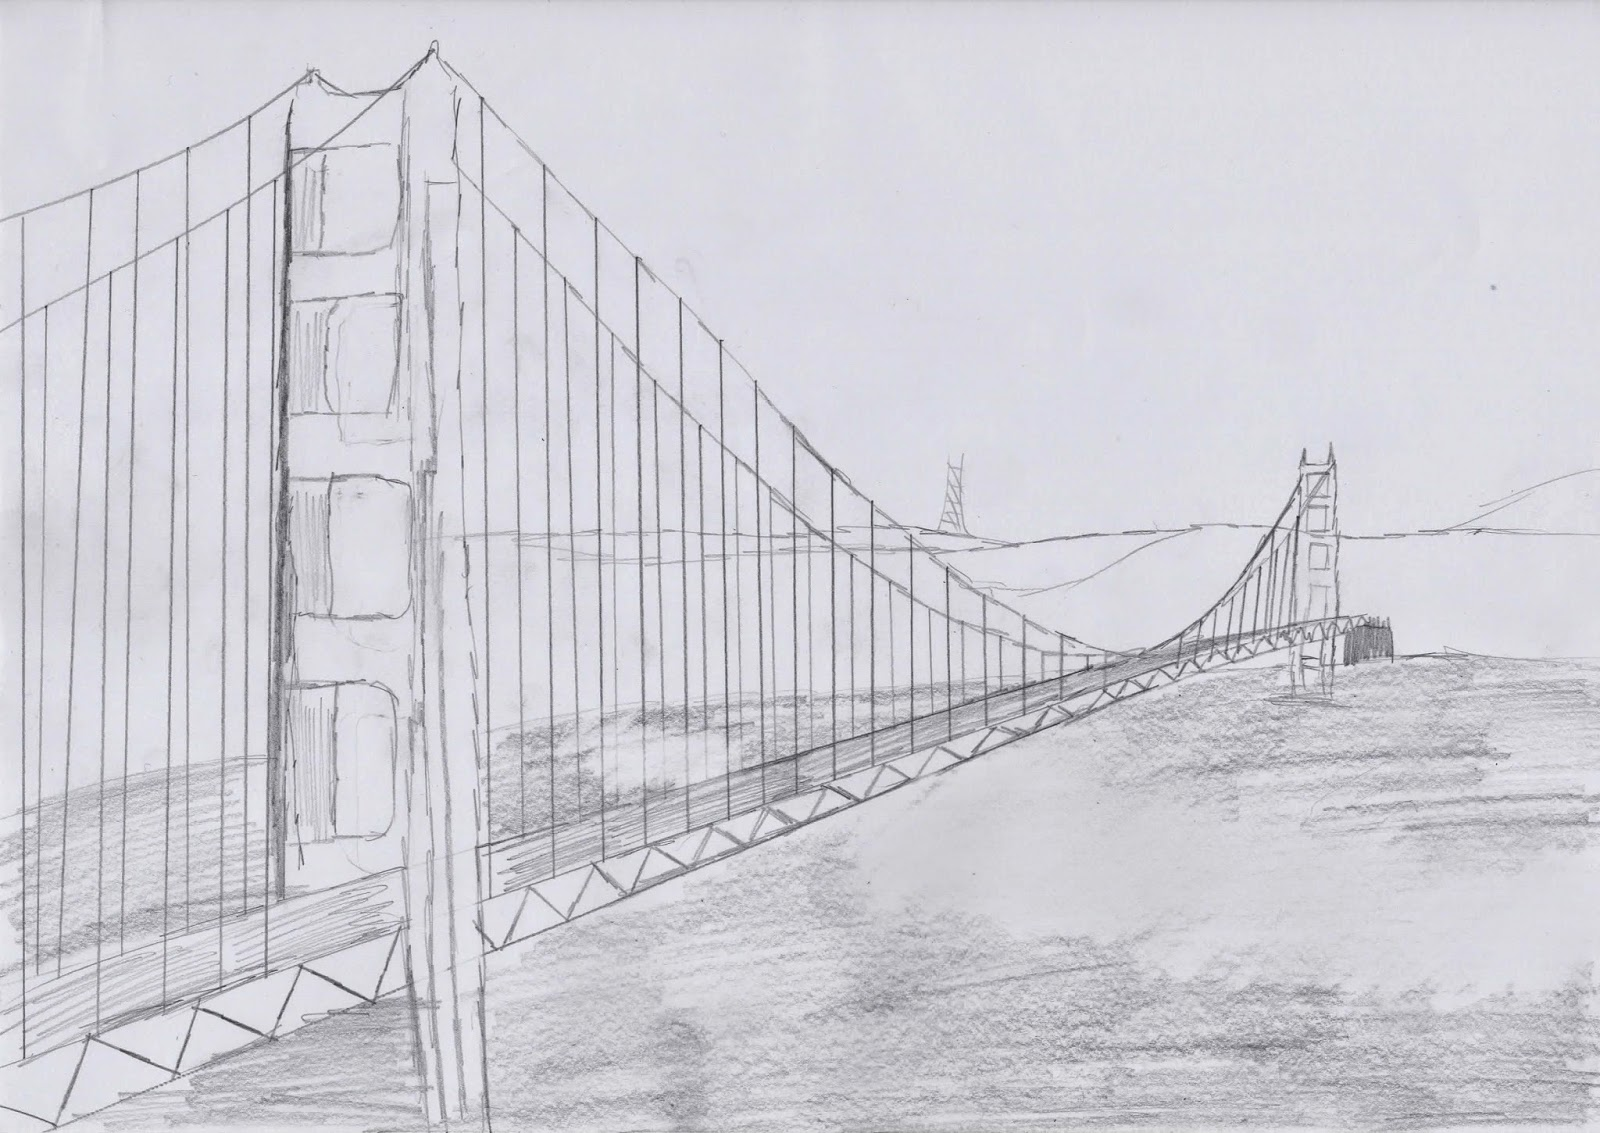 A free hand pencil sketch of san franciscos golden gate bridge a structure i would like to visit in the future